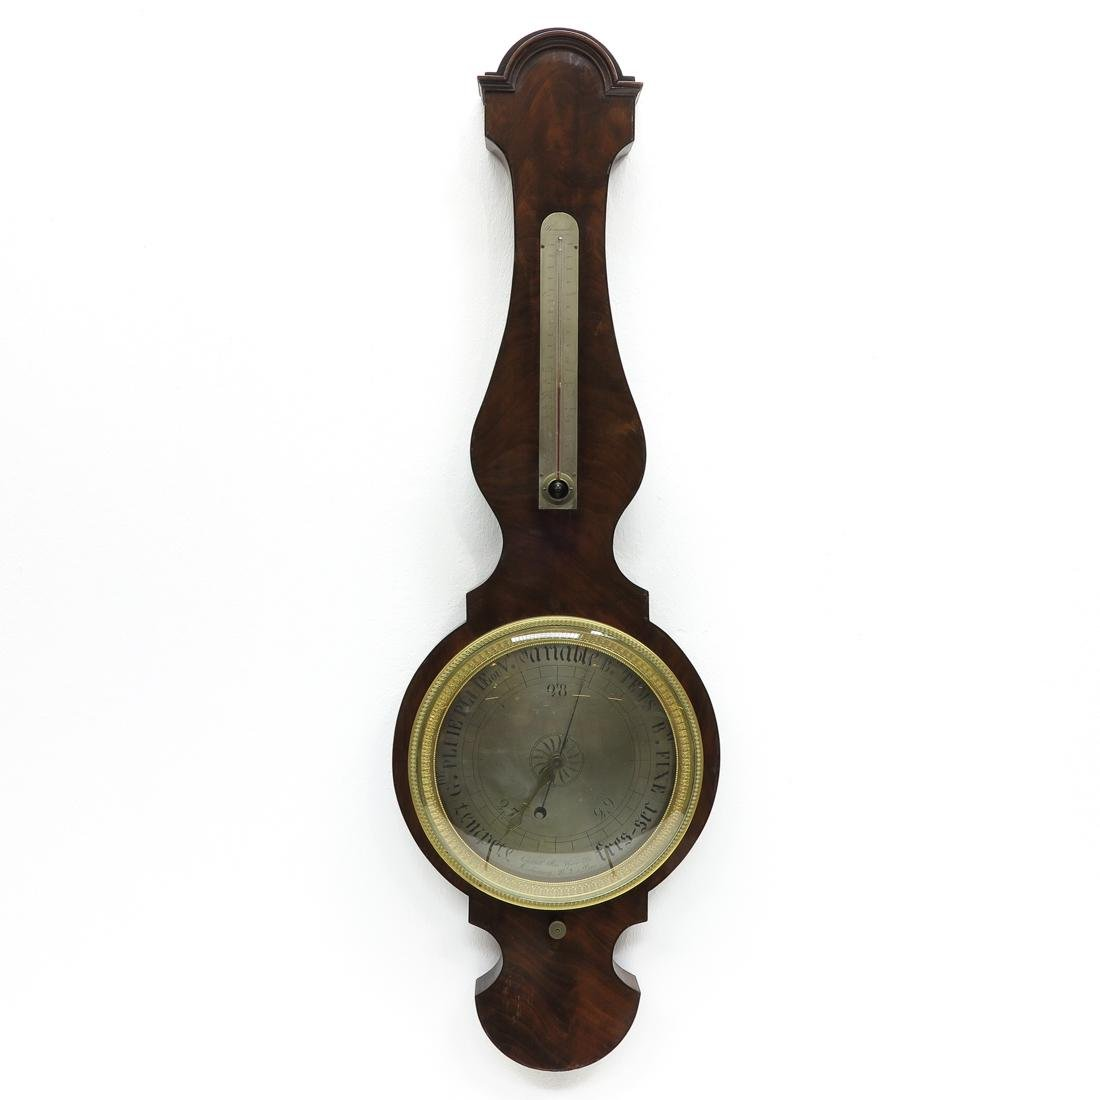 19th Century French Barometer Signed Housset